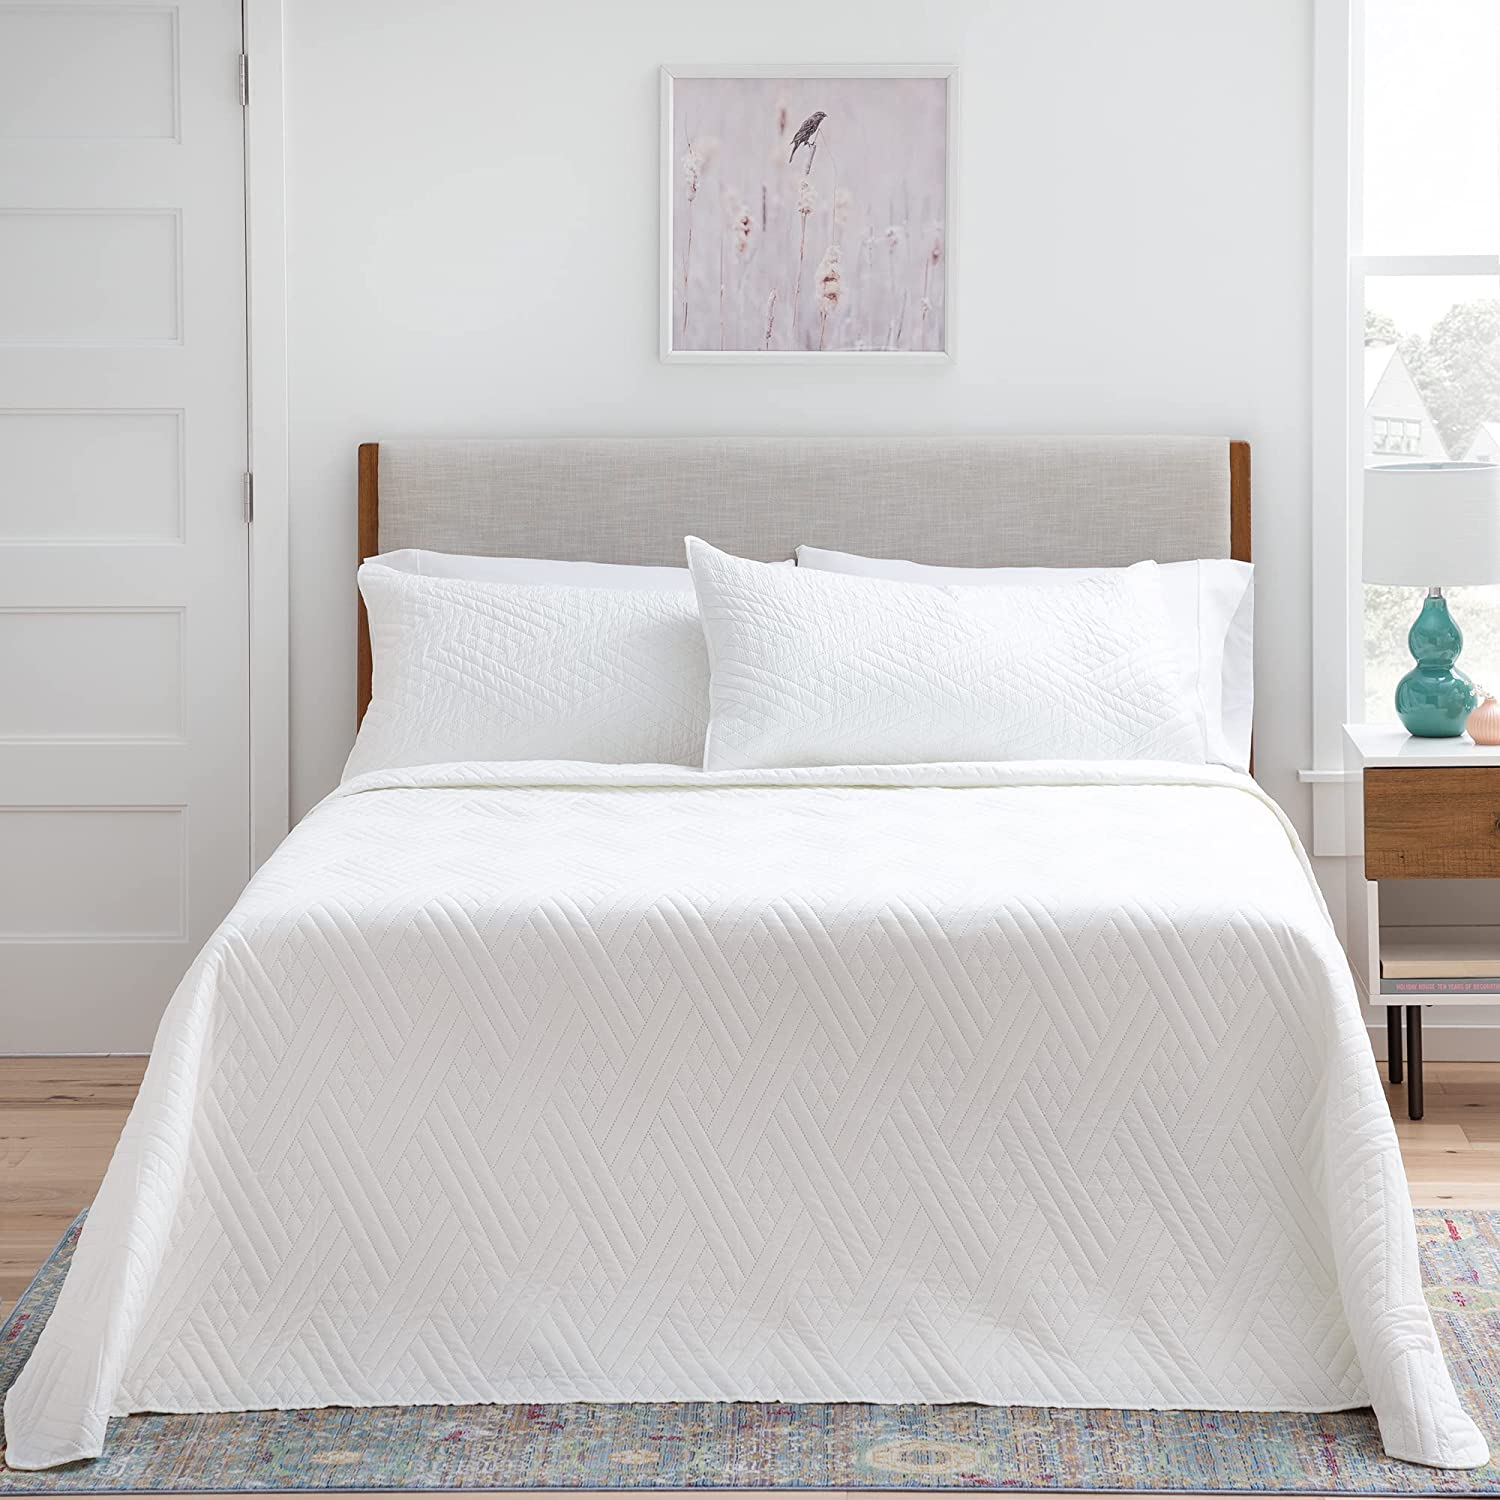 Online limited product Linenspa Microfiber Coverlet Bedspread Super special price with - Pillow Shams Light